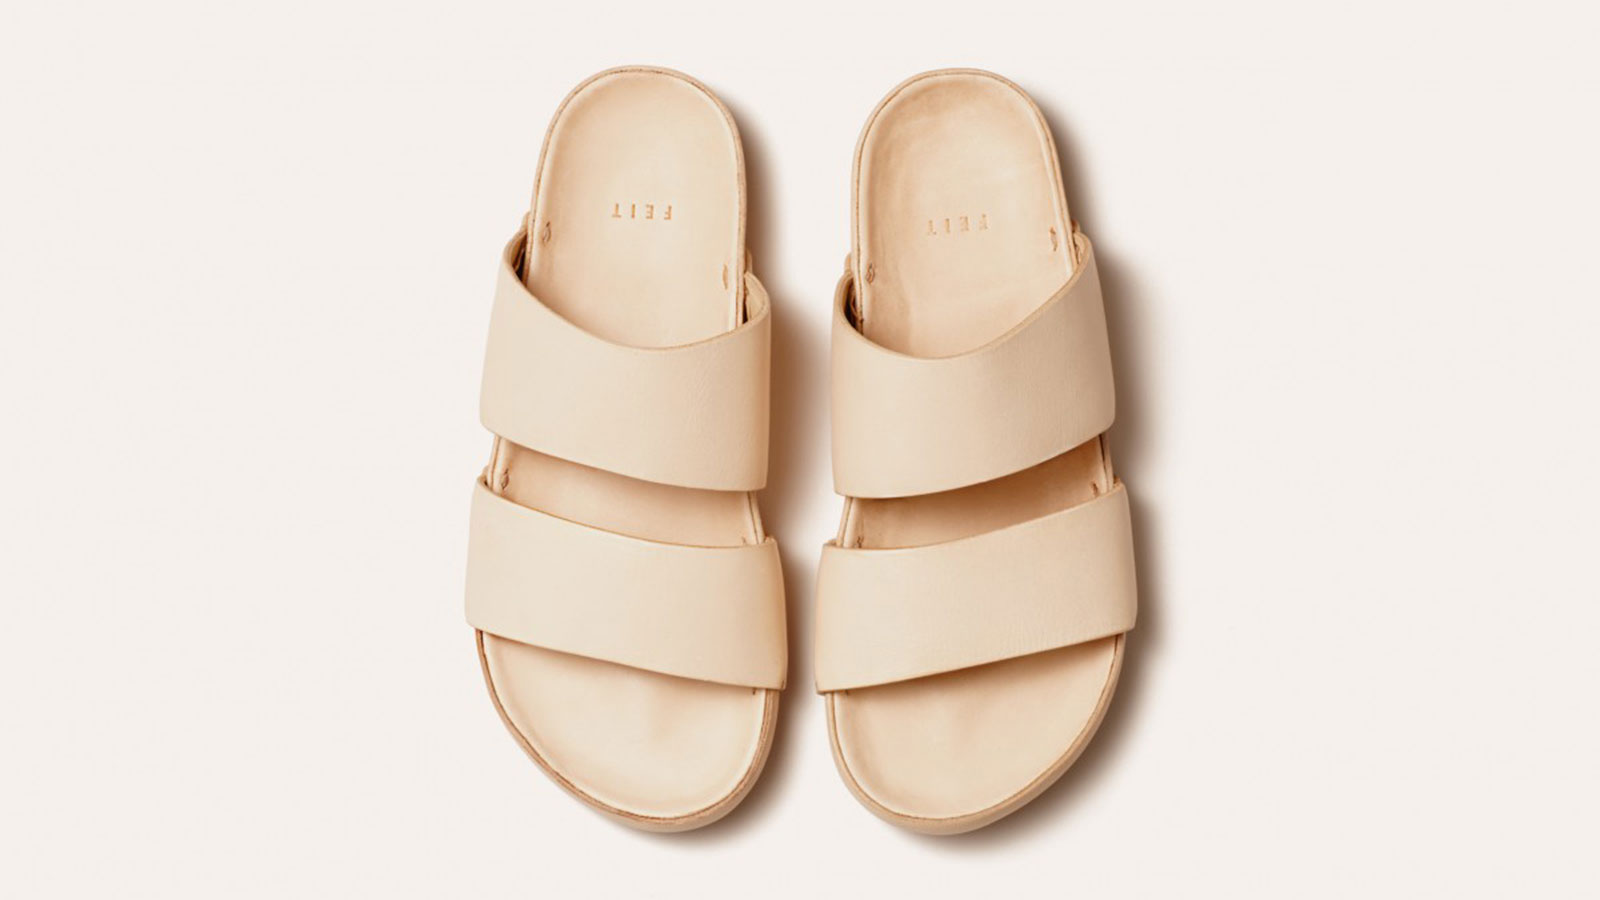 FEIT HAND-MOLDED SANDALS